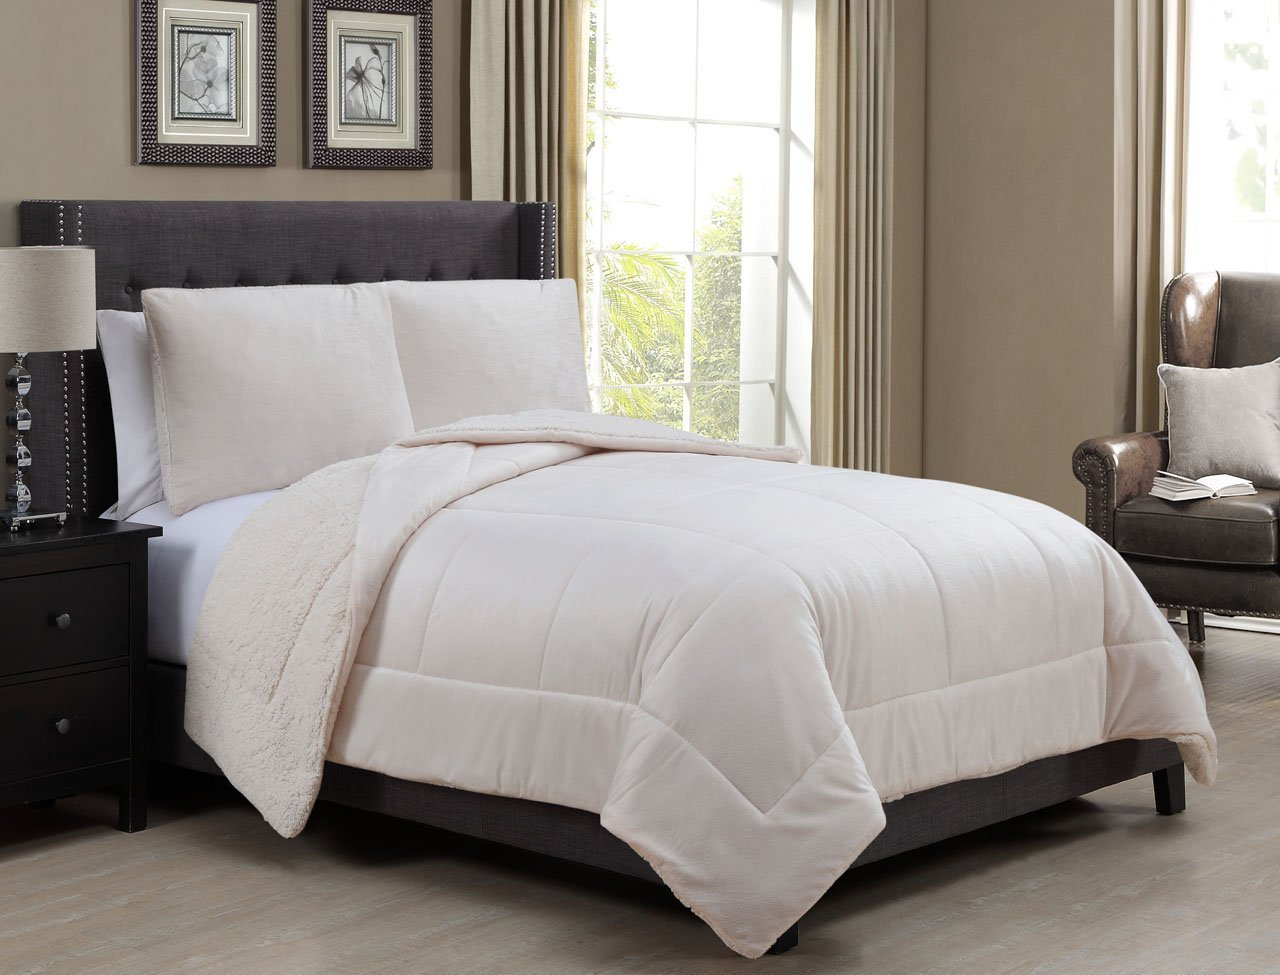 home ivory bedspread taupe comforter marilyn com full westpointhome ivorytaupe nostalgia